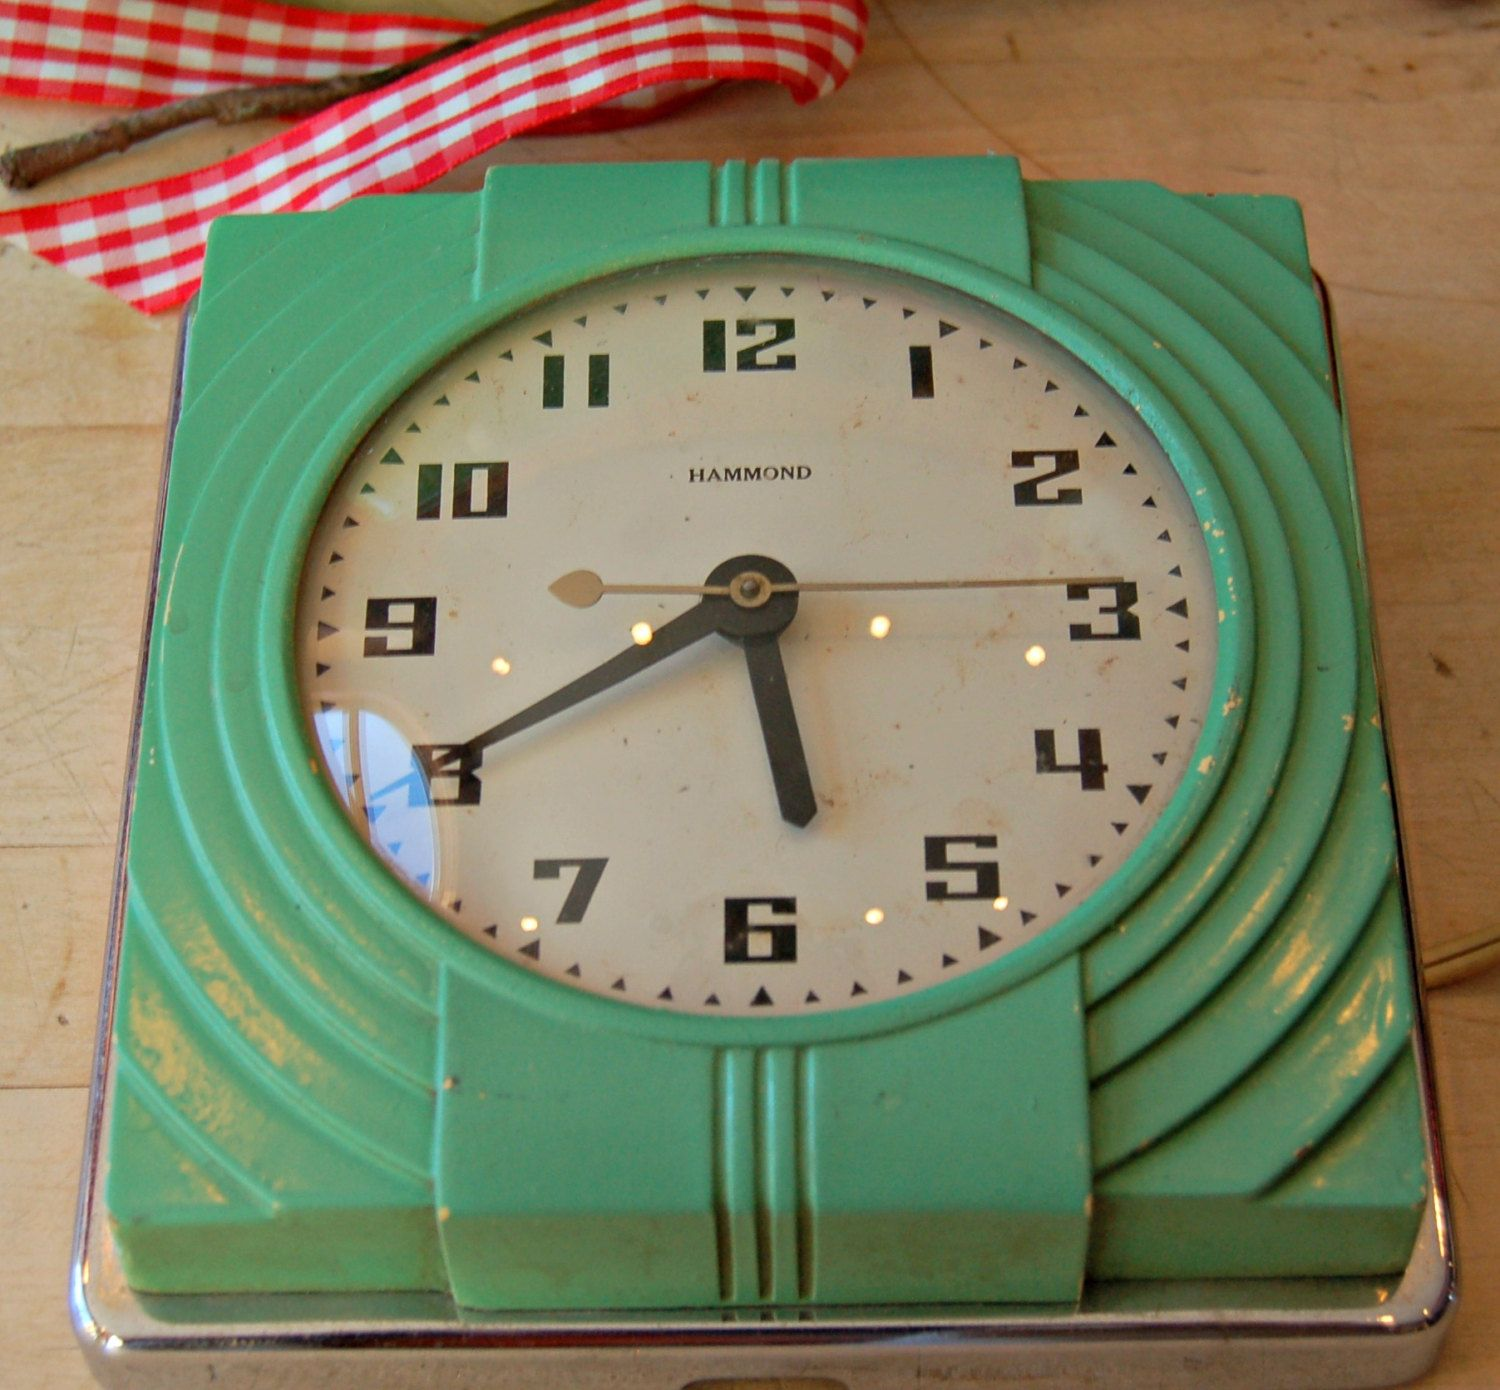 Vintage Art Deco Jade Green Color Hammond Prudence Kitchen Etsy Vintage Framed Art Art Deco Decor Art Deco Clock